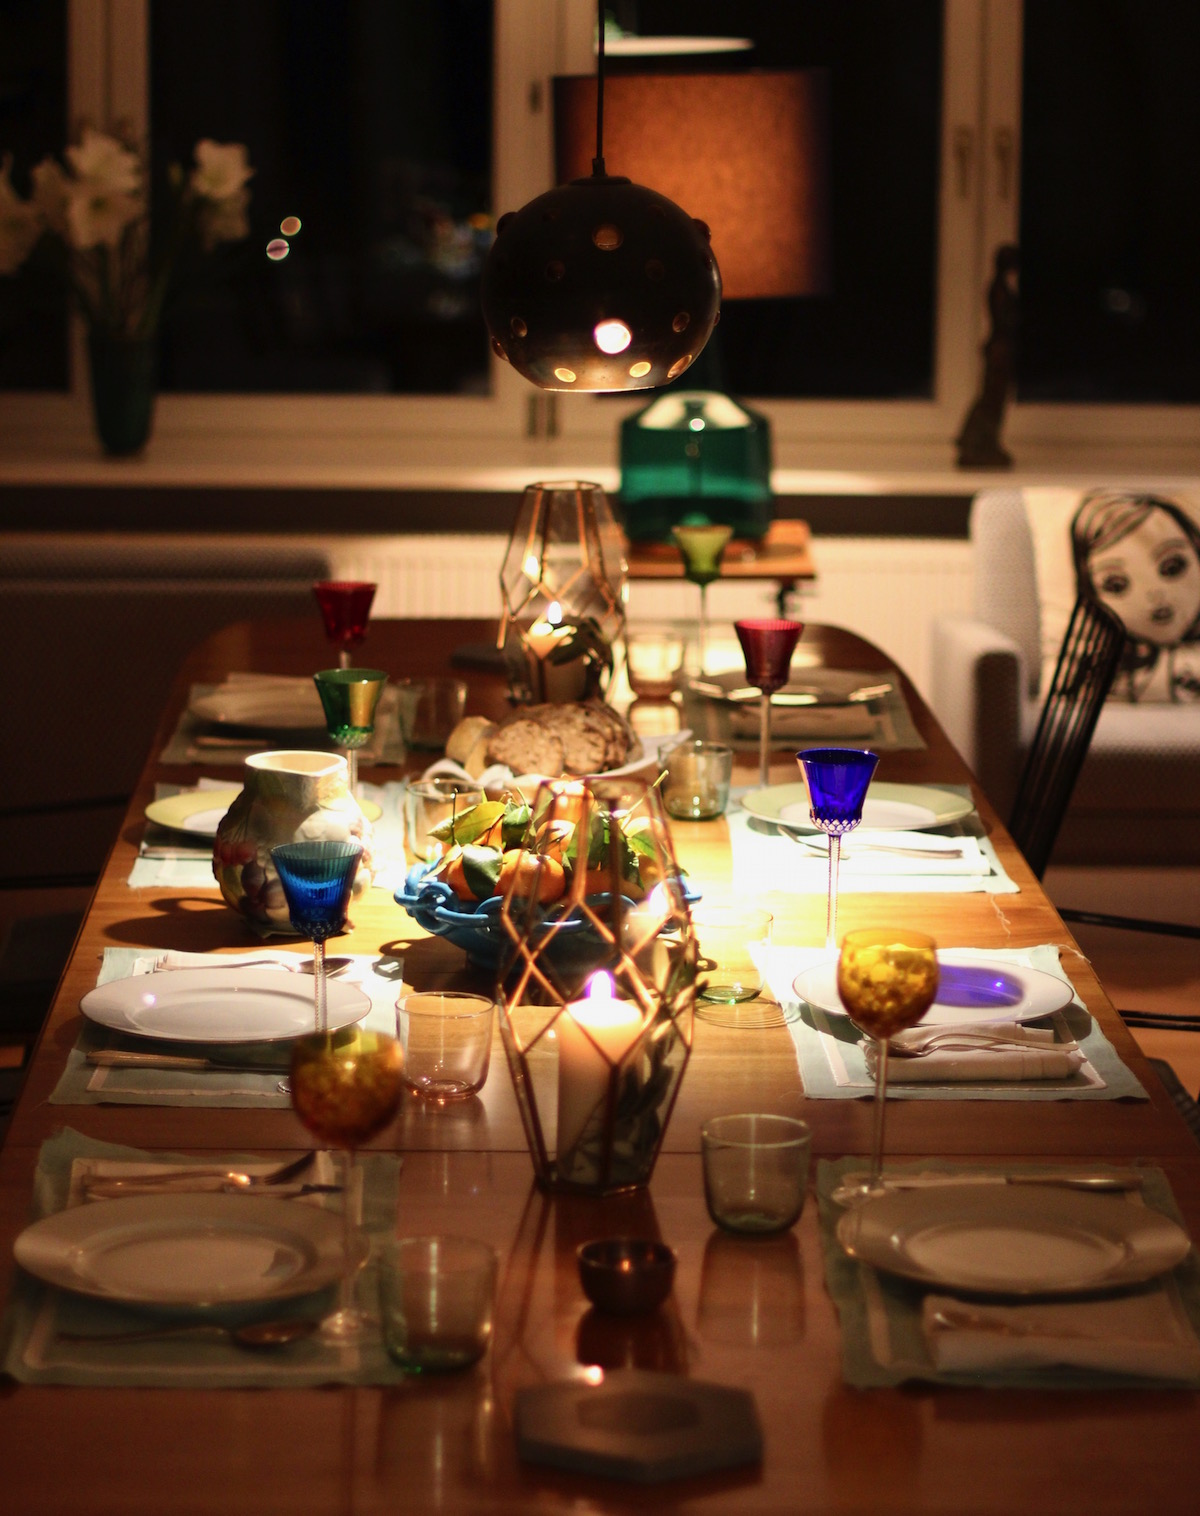 The set table at the IRMASWORLD Christmas Party last week. Llet us discuss how to really enjoy food and avoid overeating during Christmas this year. The Hemsleys seemed to be the perfect consultants for that matter. On the slider: illustration by IRMA, photos © Nick Hopper